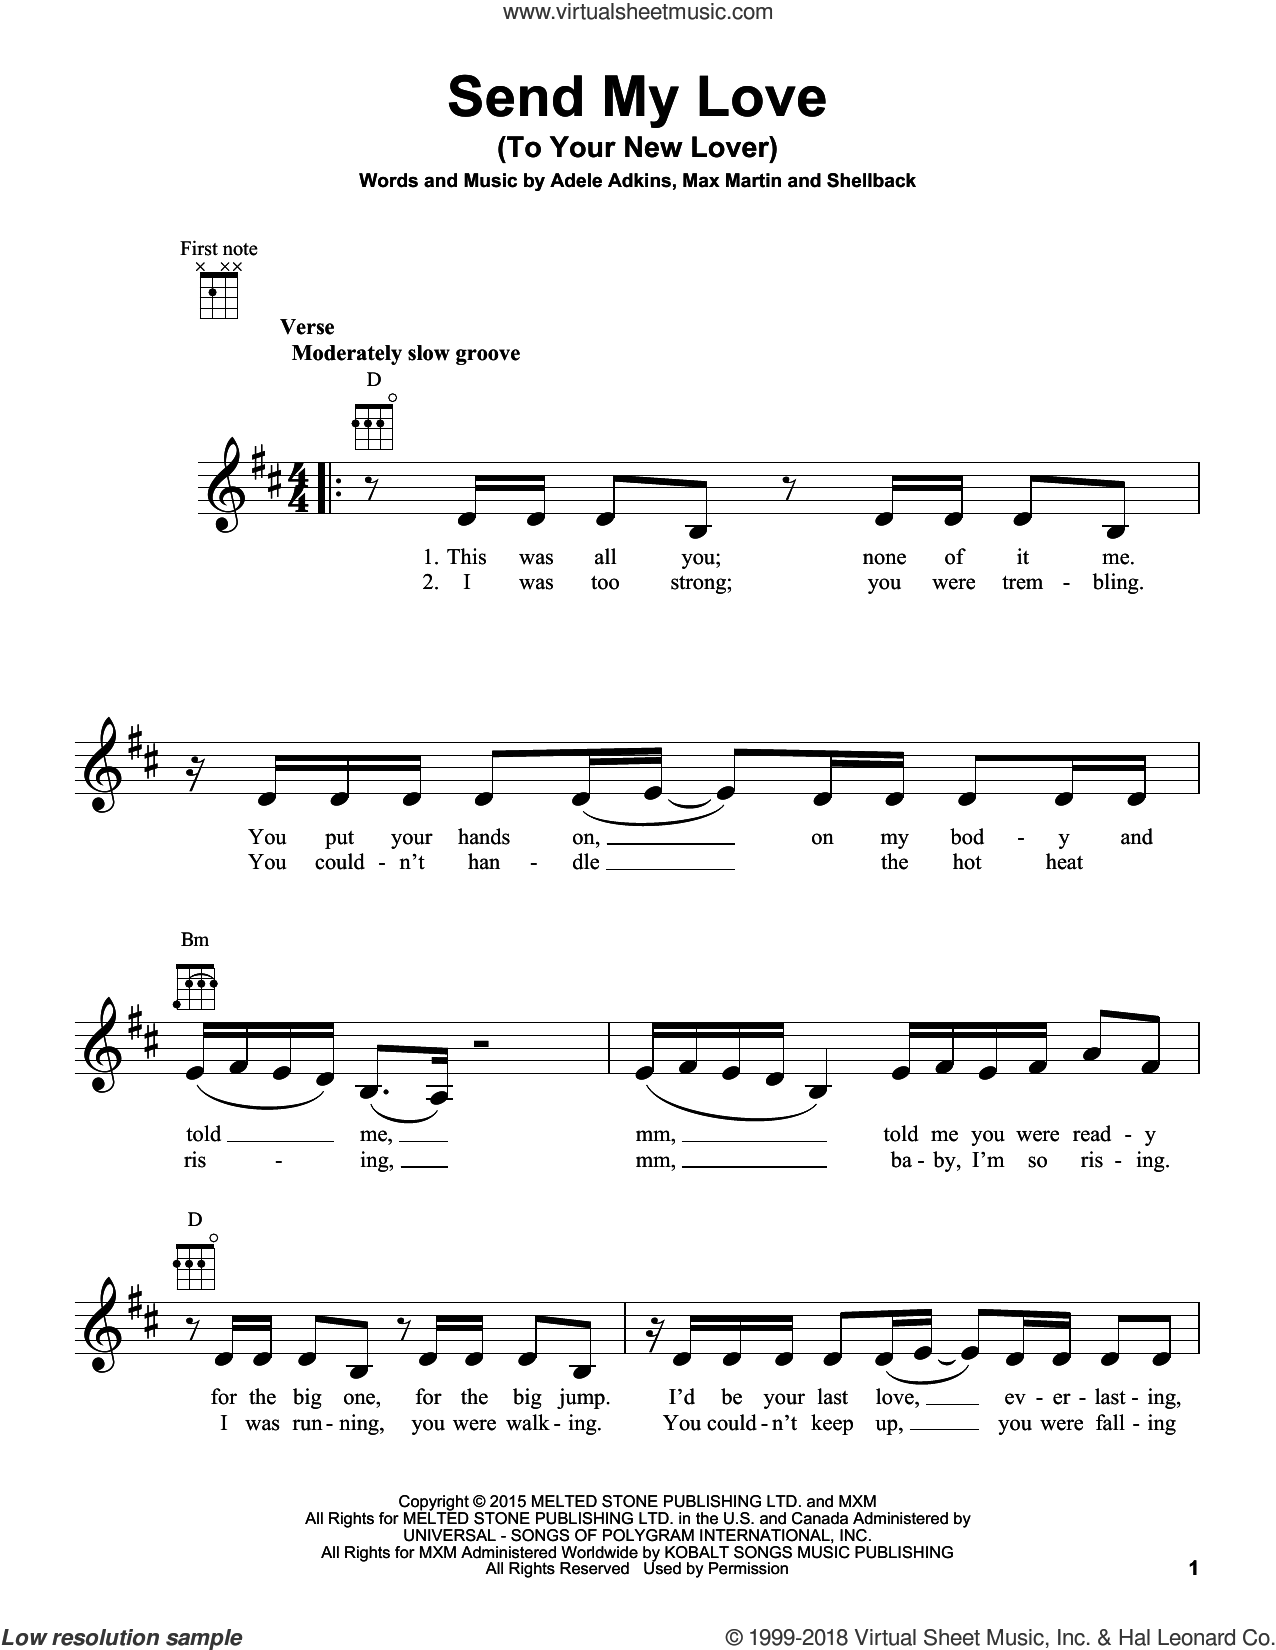 Send My Love (To Your New Lover) sheet music for ukulele by Adele, Johan Schuster, Max Martin and Shellback, intermediate. Score Image Preview.